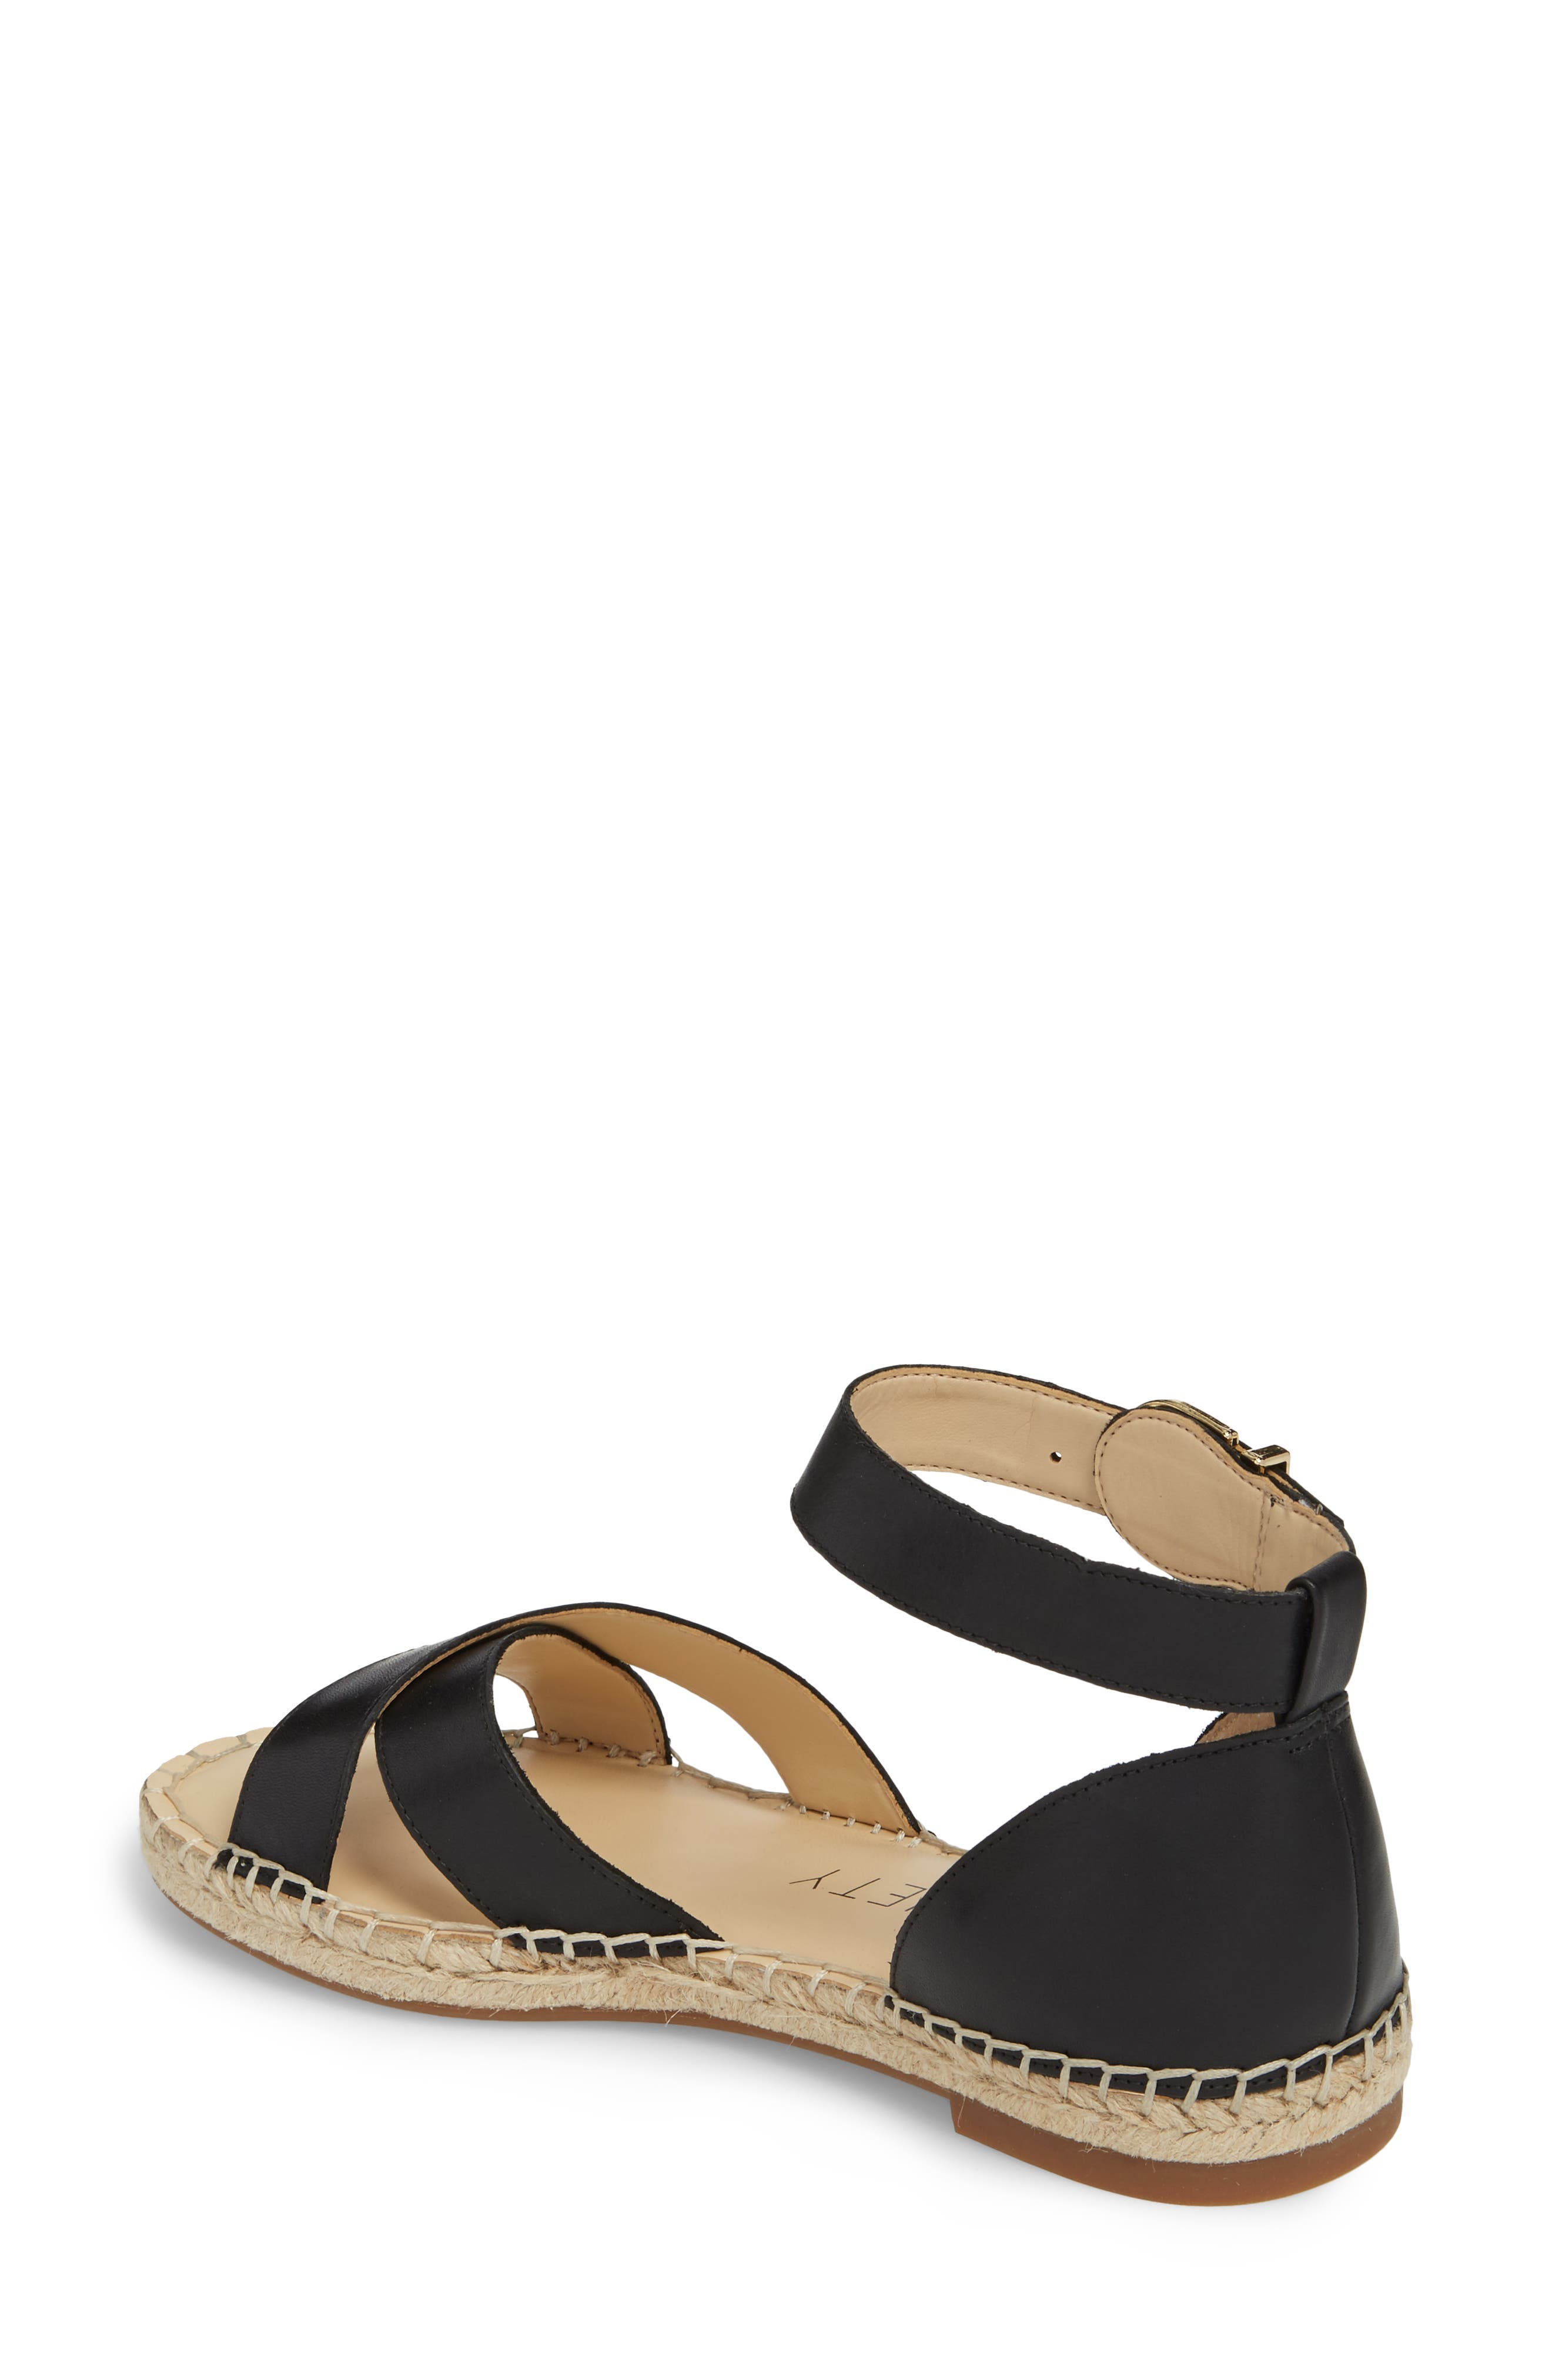 Saundra Espadrille Sandal,                             Alternate thumbnail 5, color,